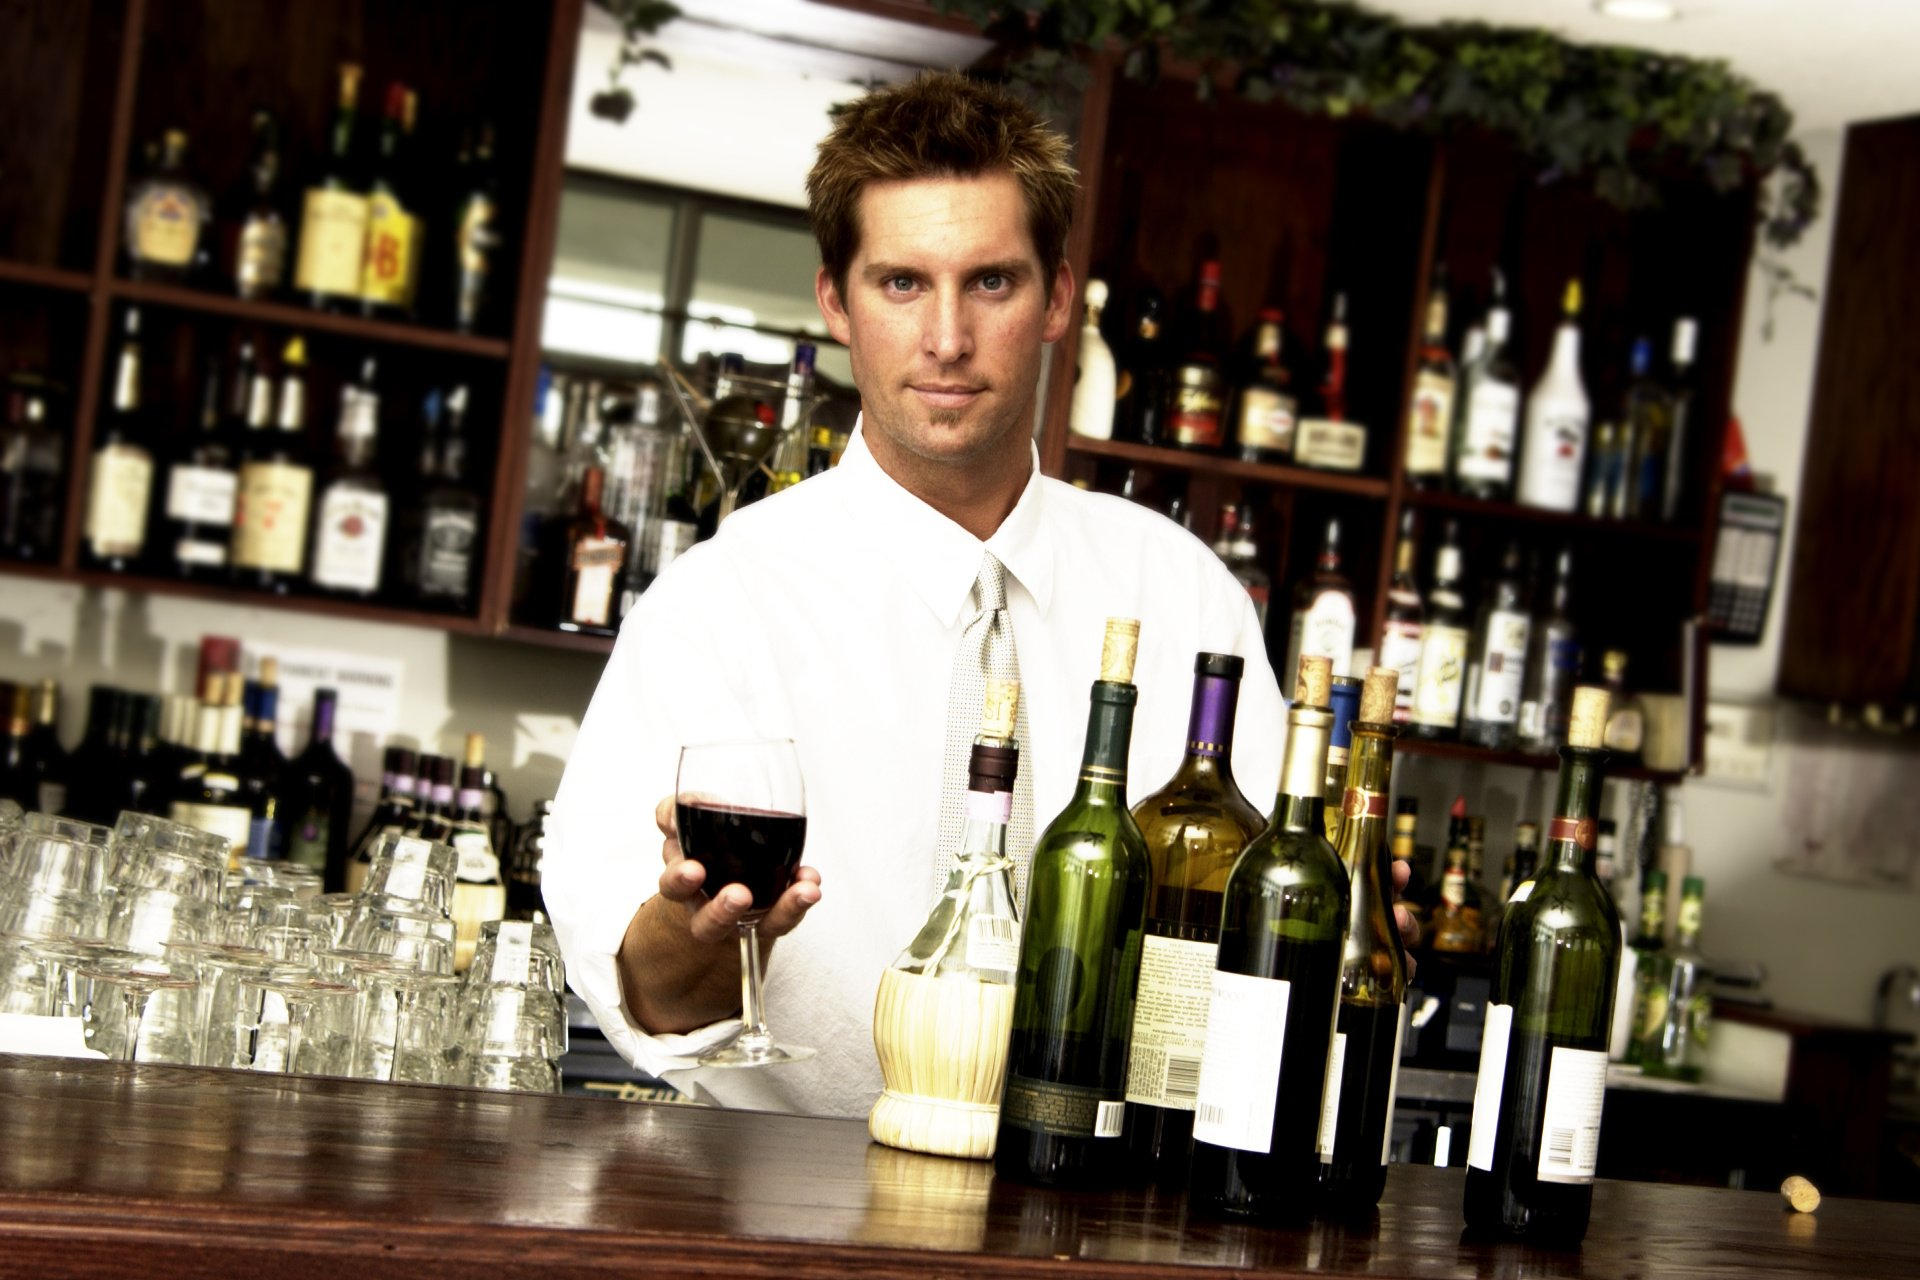 A sommelier at his counter offering a glass of wine